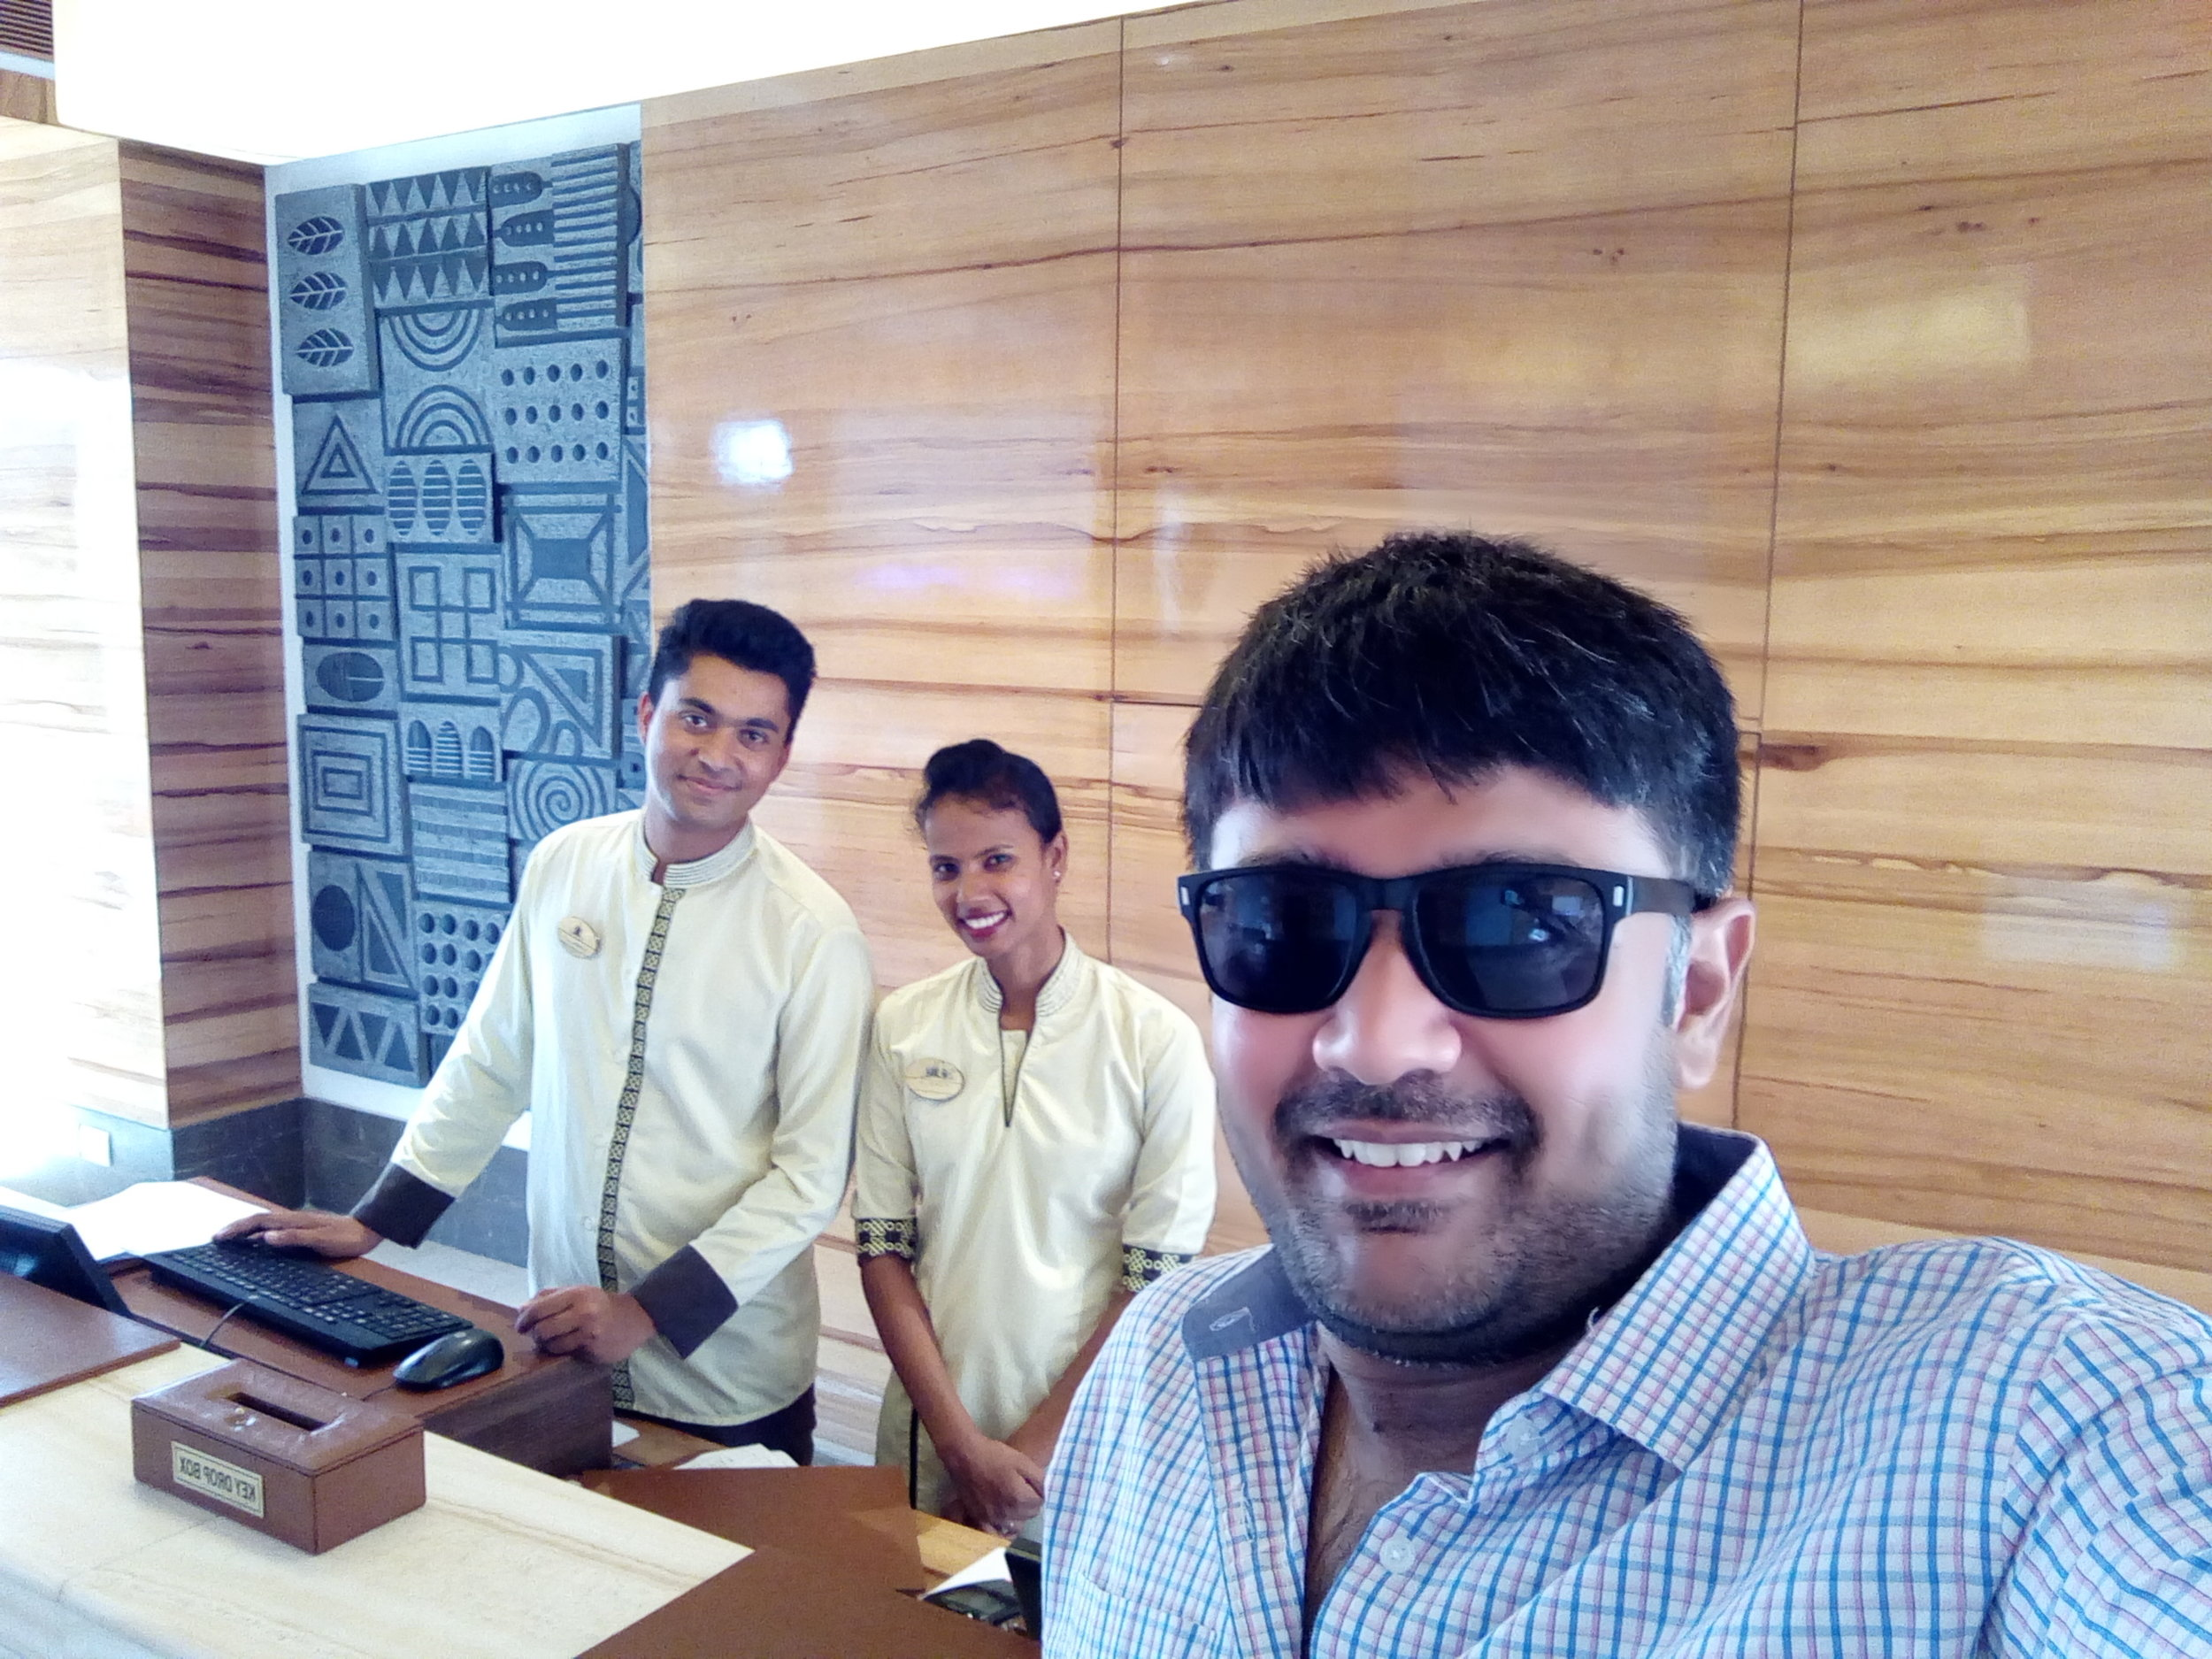 Selfie with the receptionists (both are siblings)